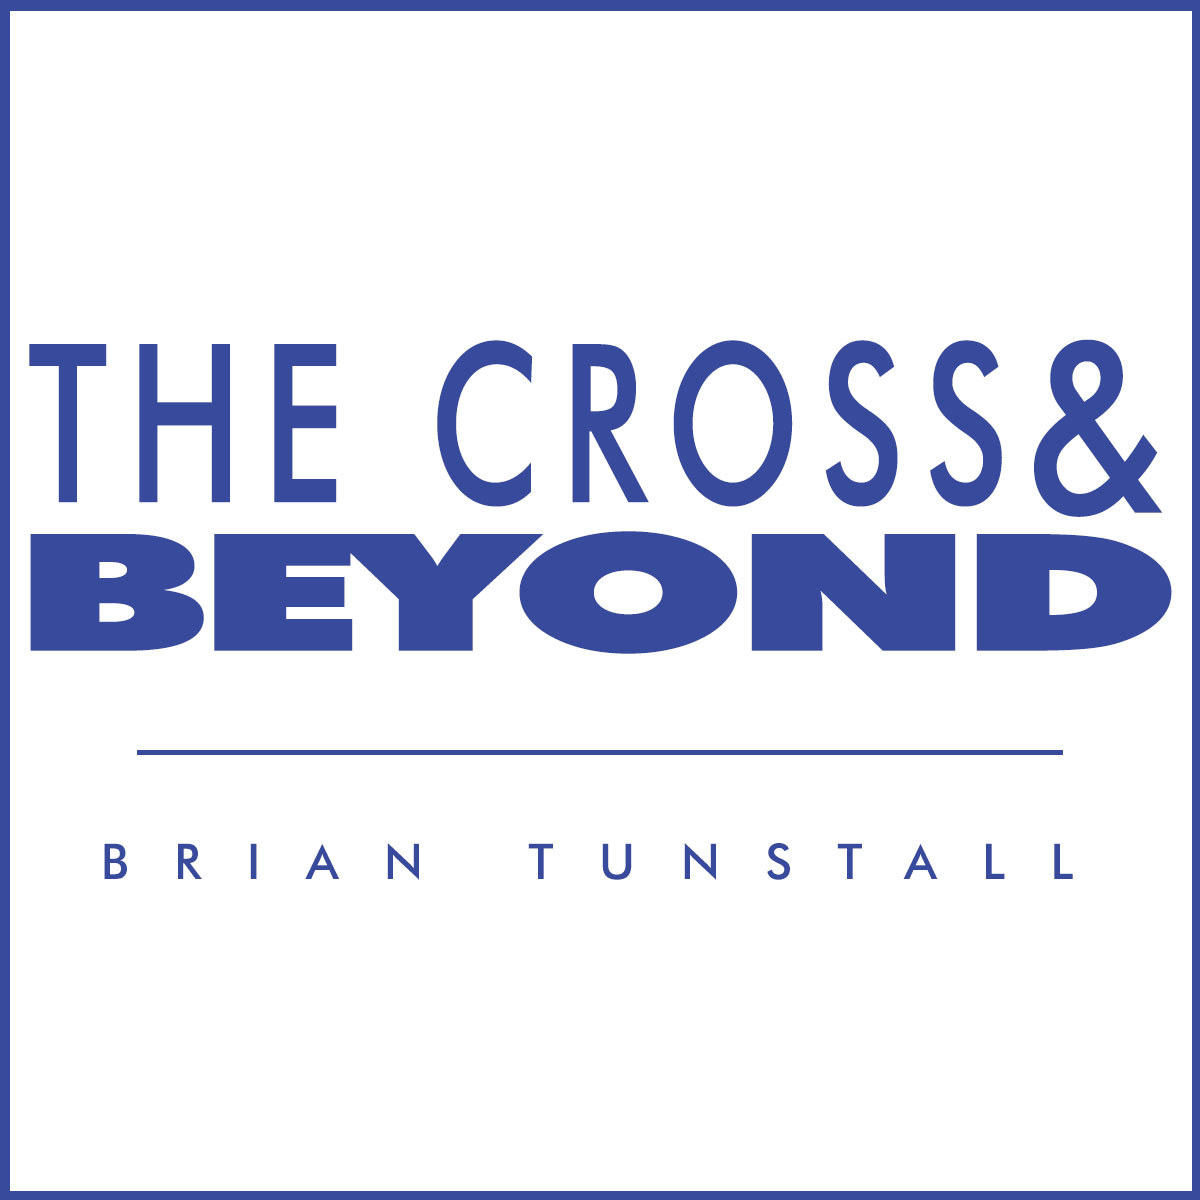 Beyond the Cross_Brian Tunstall_Cover Art